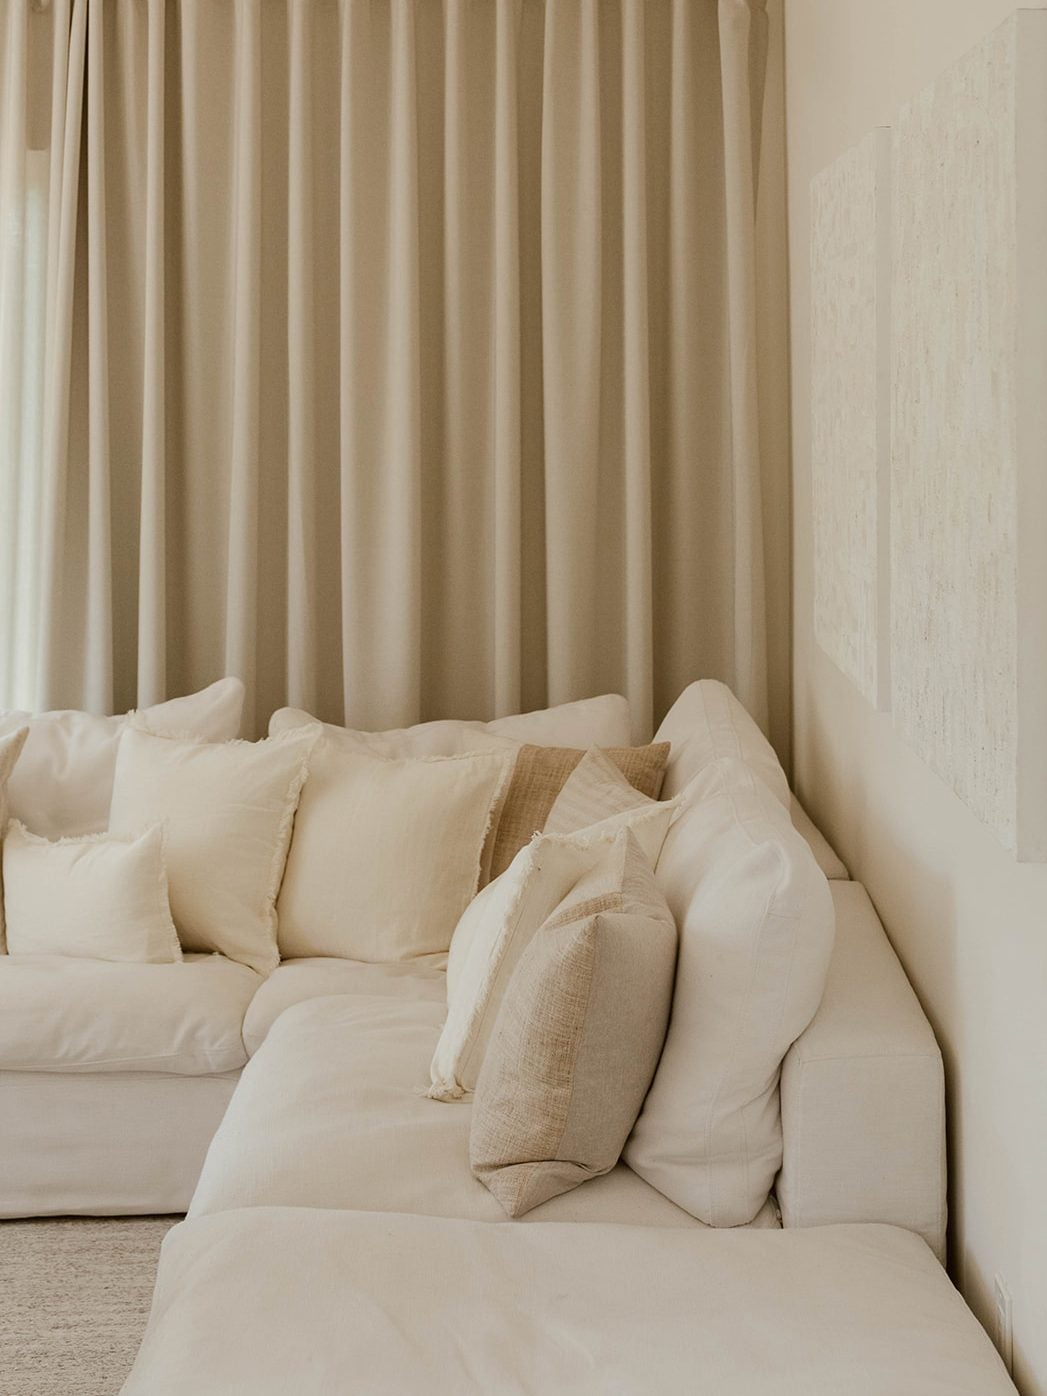 Ditching the Obvious Created an All-White Living Room That Doesn't Fall Flat